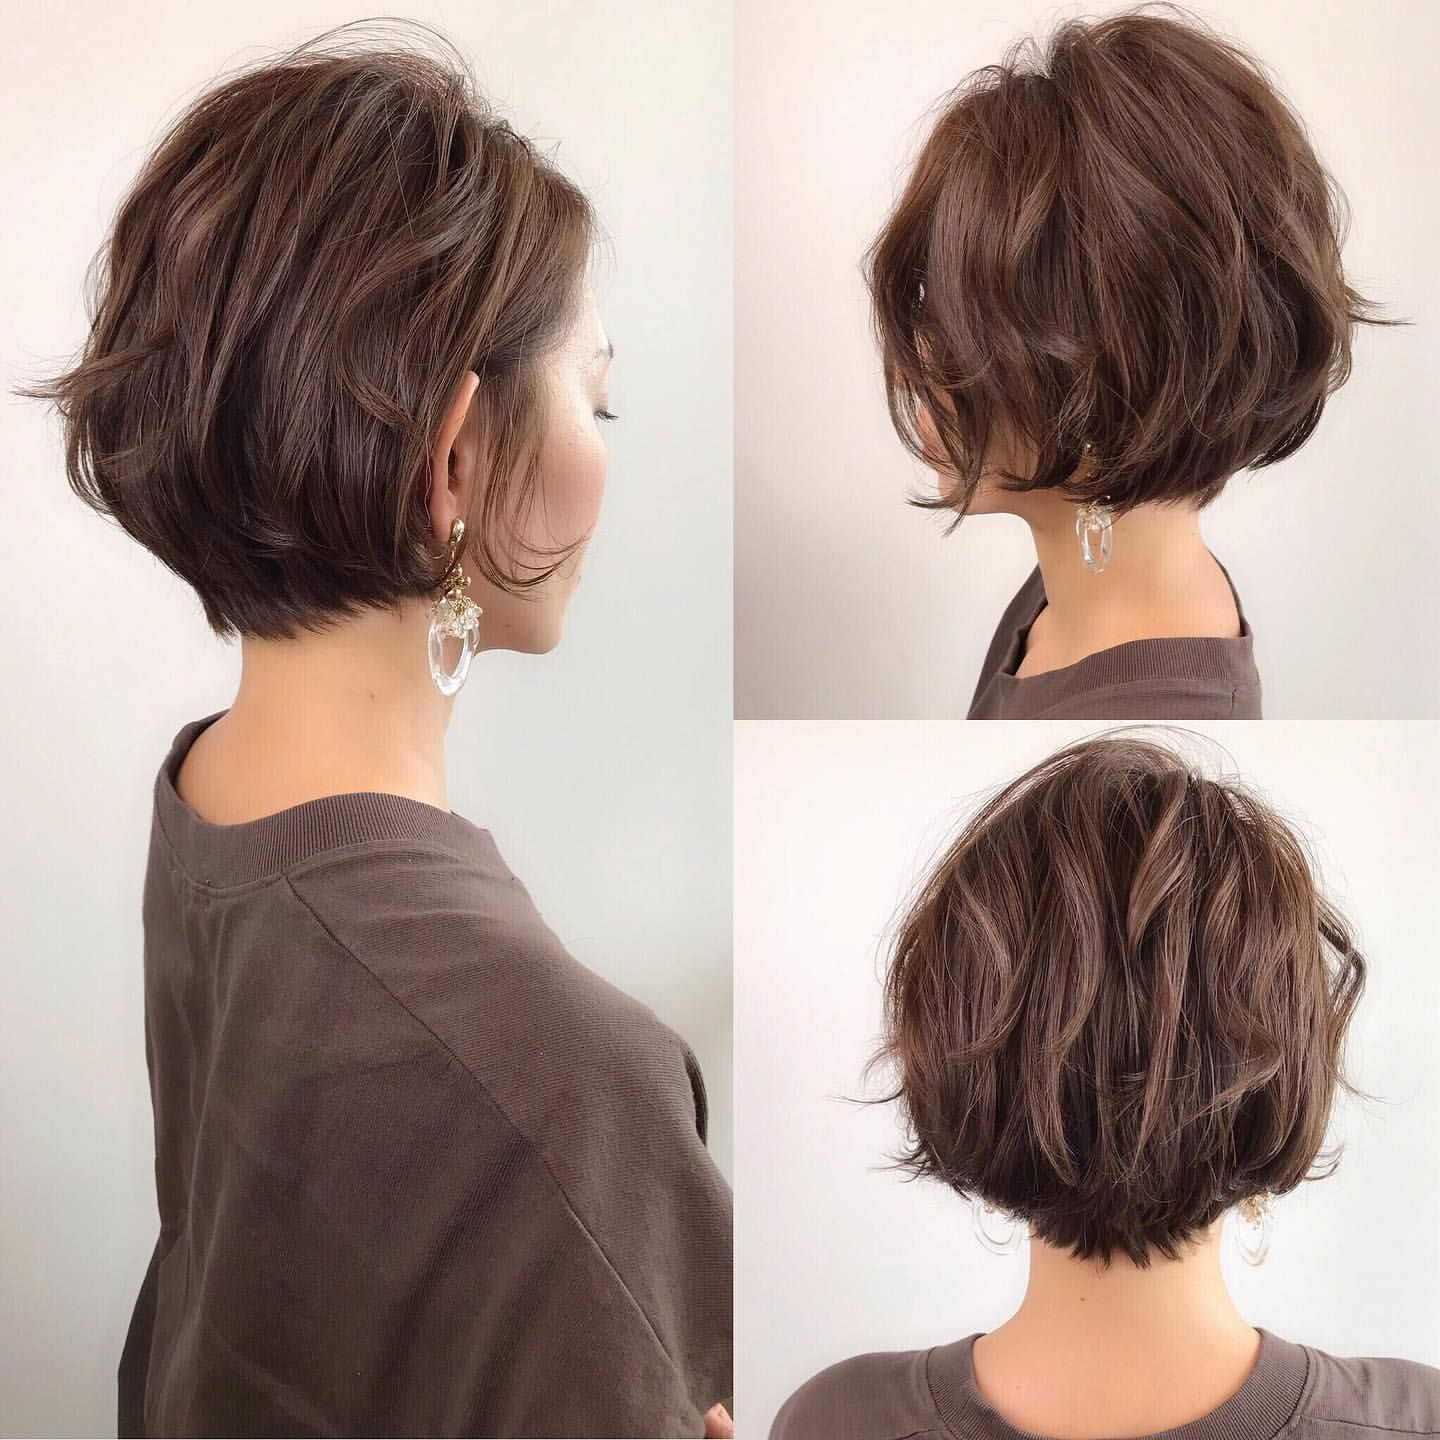 65 Best Messy Short Hairstyles Japanese Hairstyles Japanese Messy Short In 2020 Japanese Short Hair Messy Short Hair Short Hair Styles